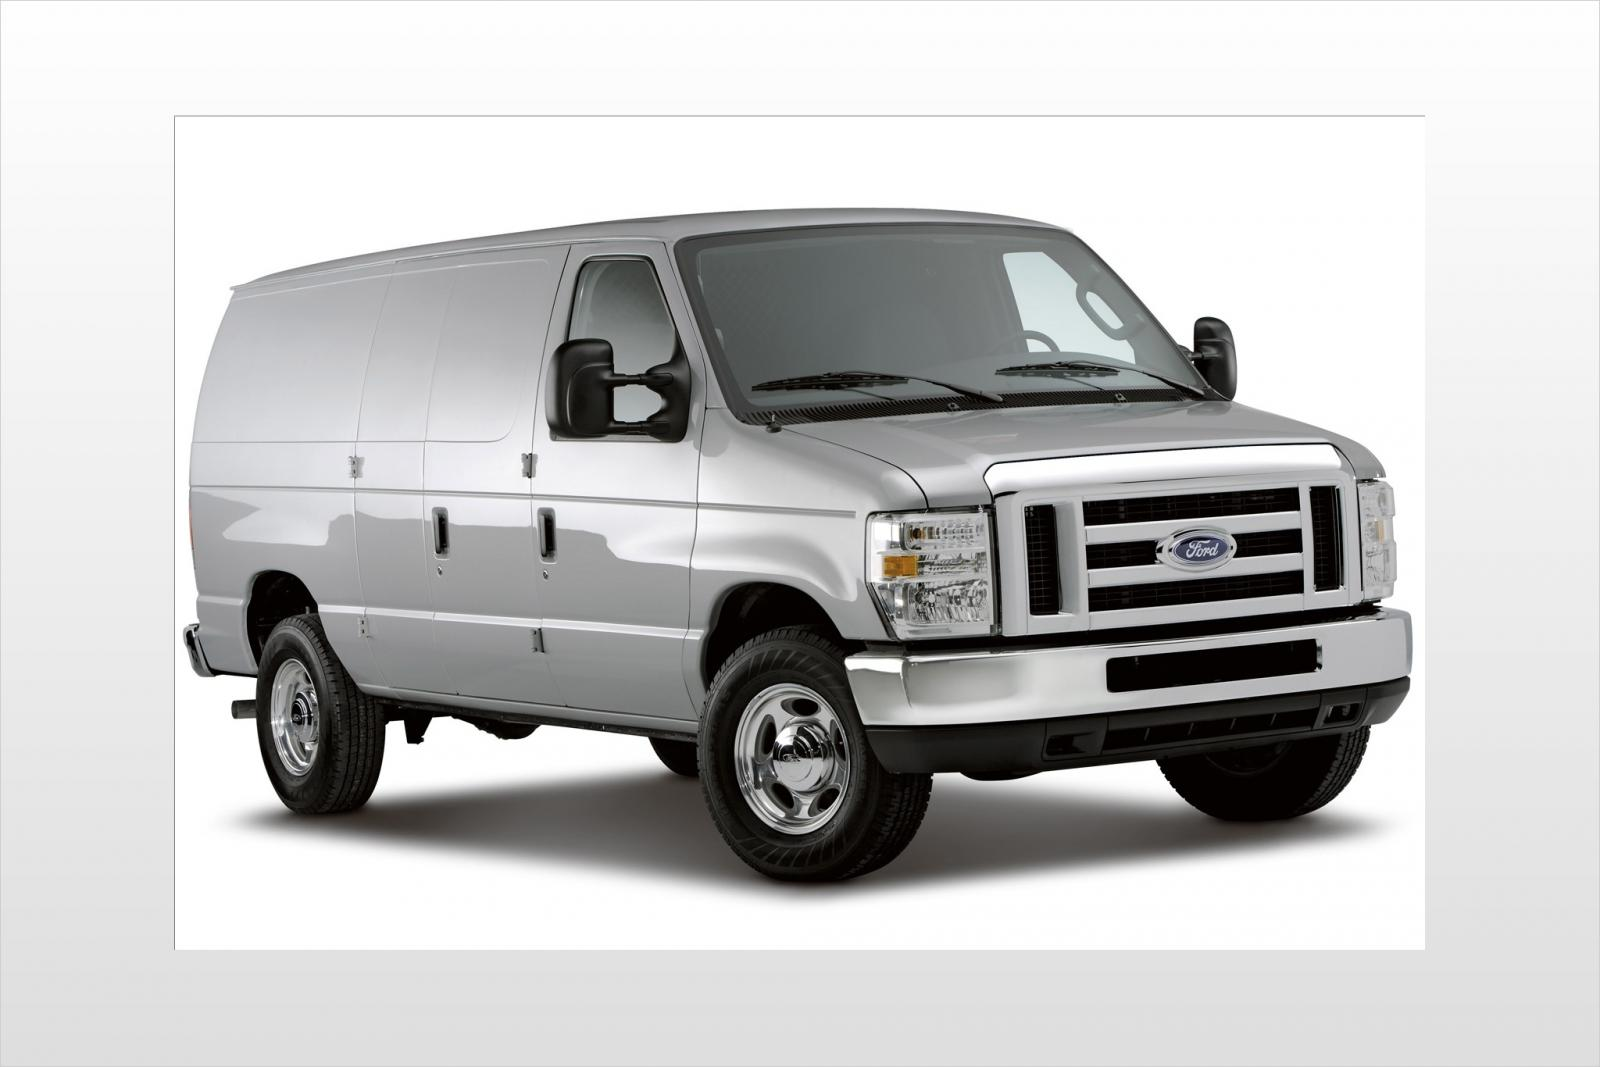 hight resolution of 2008 ford econoline cargo 1 800 1024 1280 1600 origin